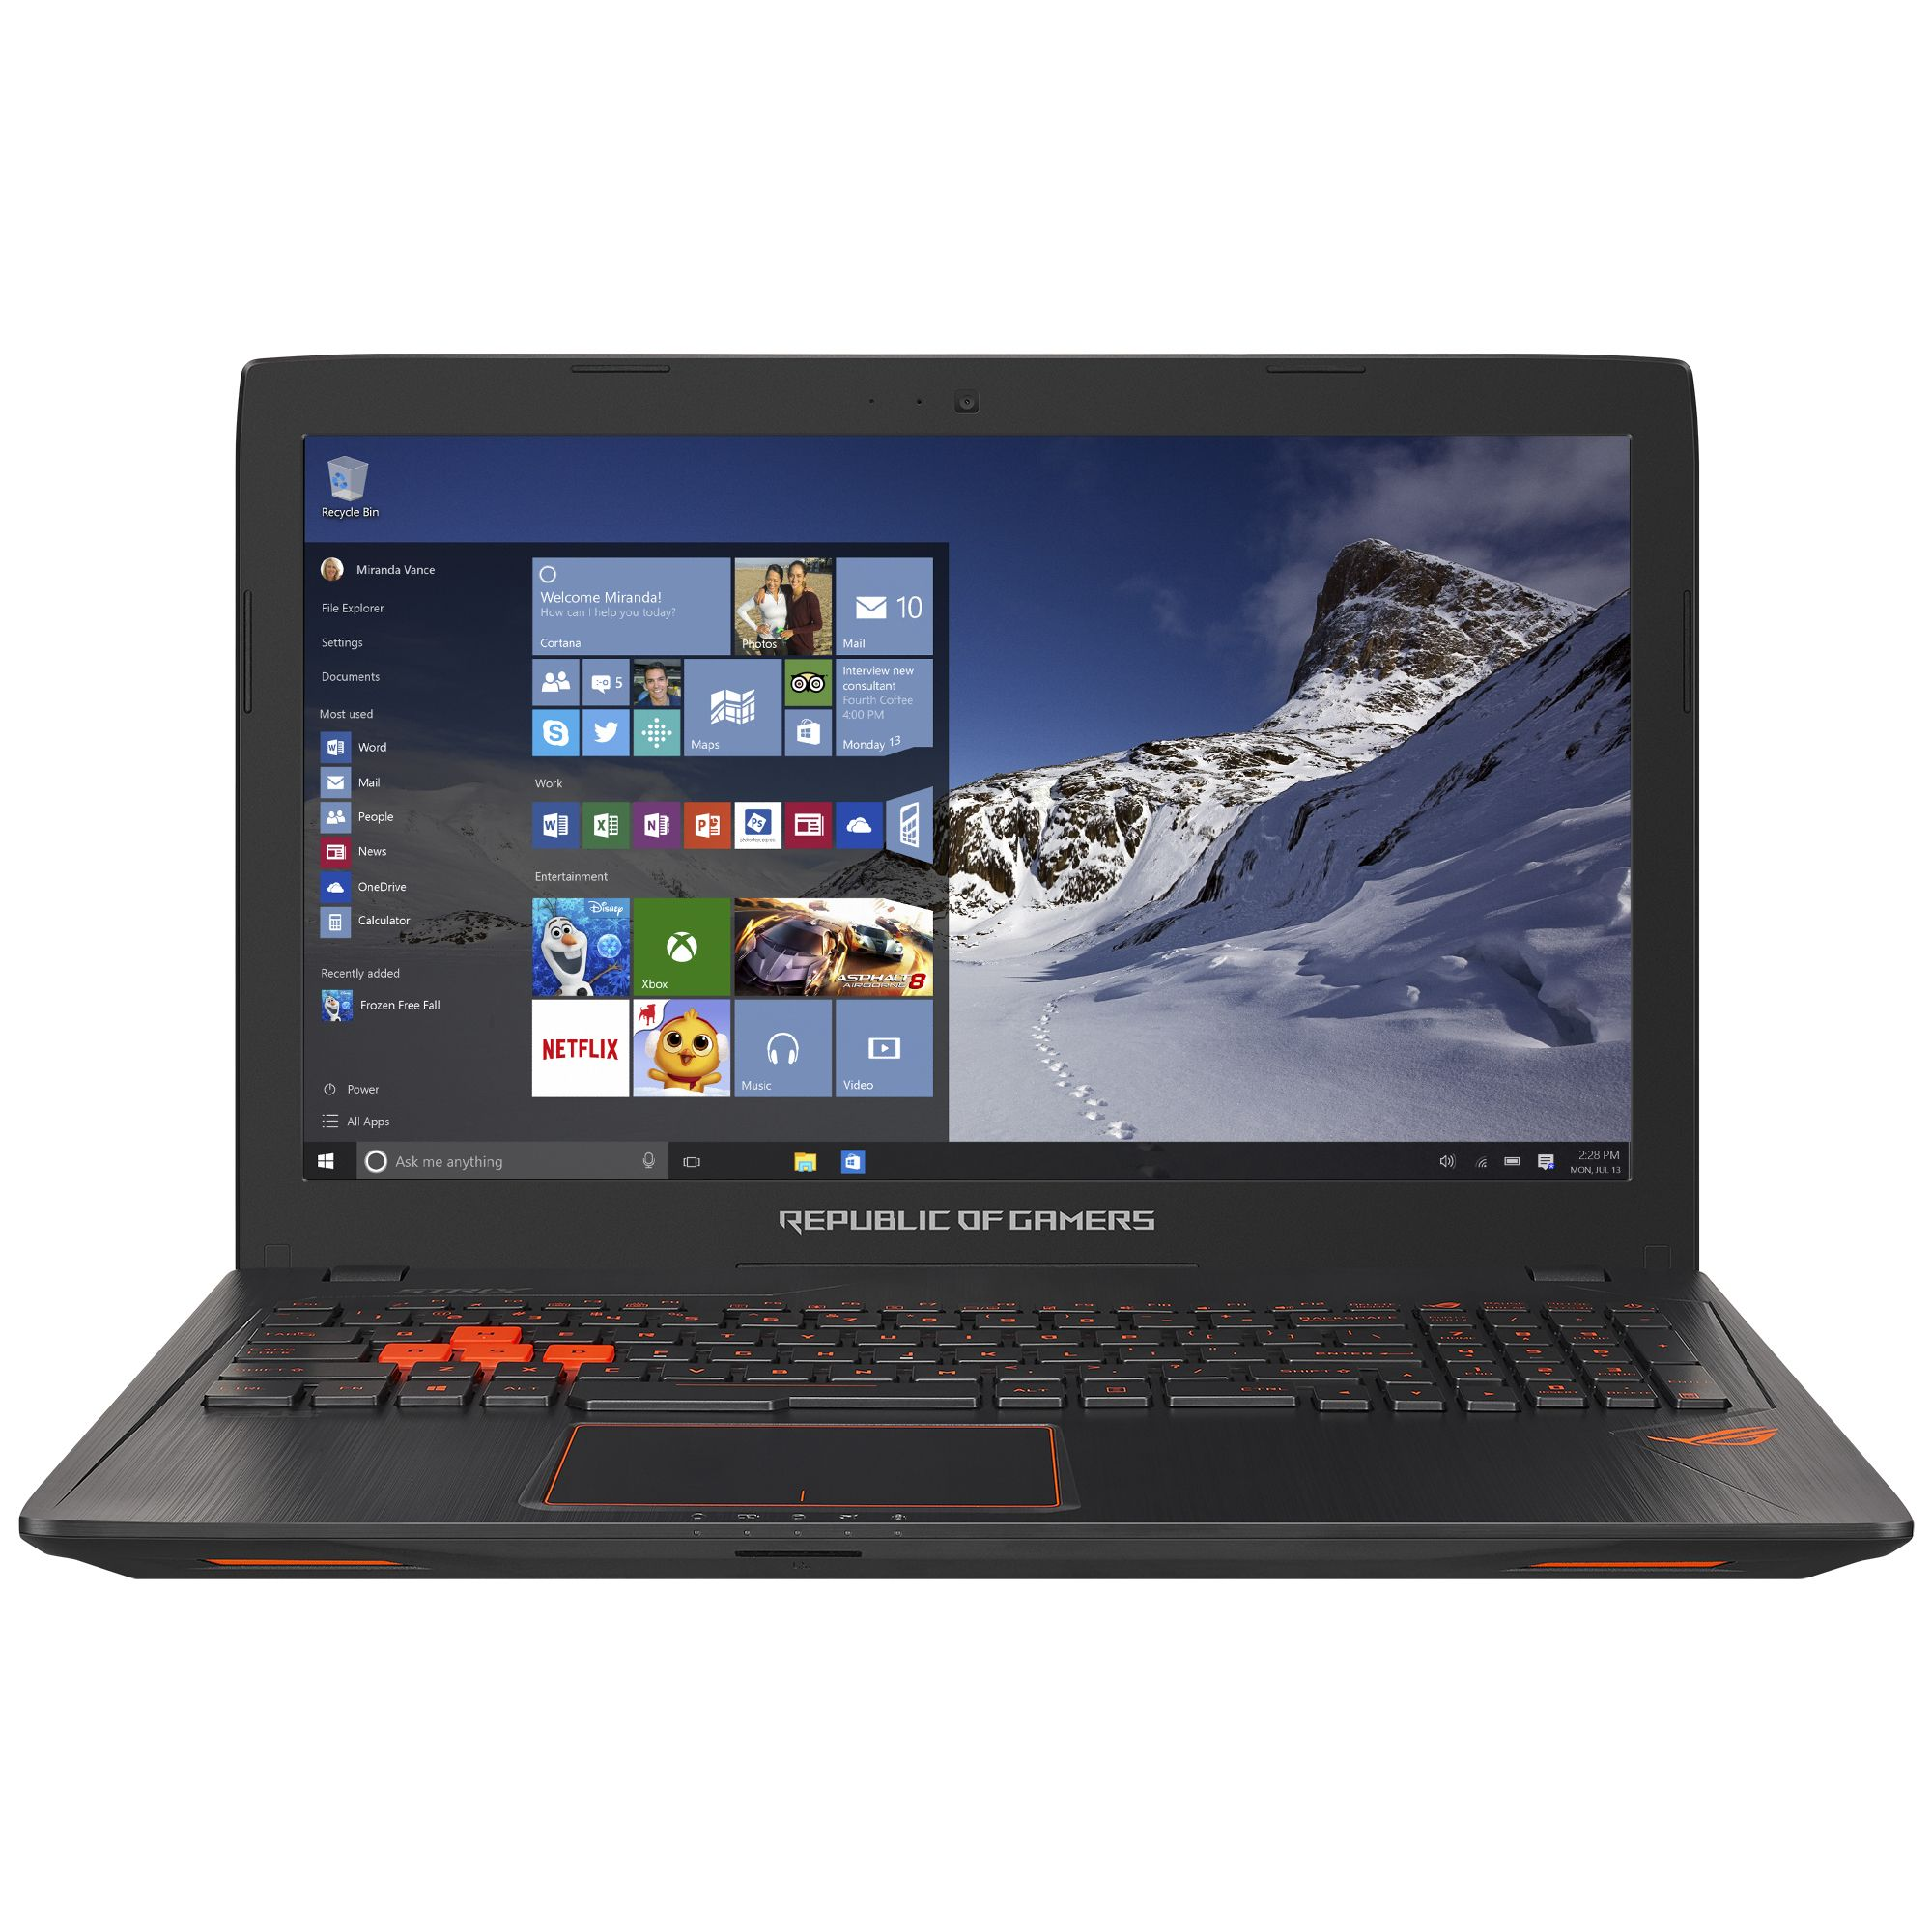 Notebook Asus ROG GL553VE 15.6 Full HD Intel Core i7-7700HQ GTX 1050 Ti-4GB RAM 16GB HDD 1TB + SSD 128GB Endless OS